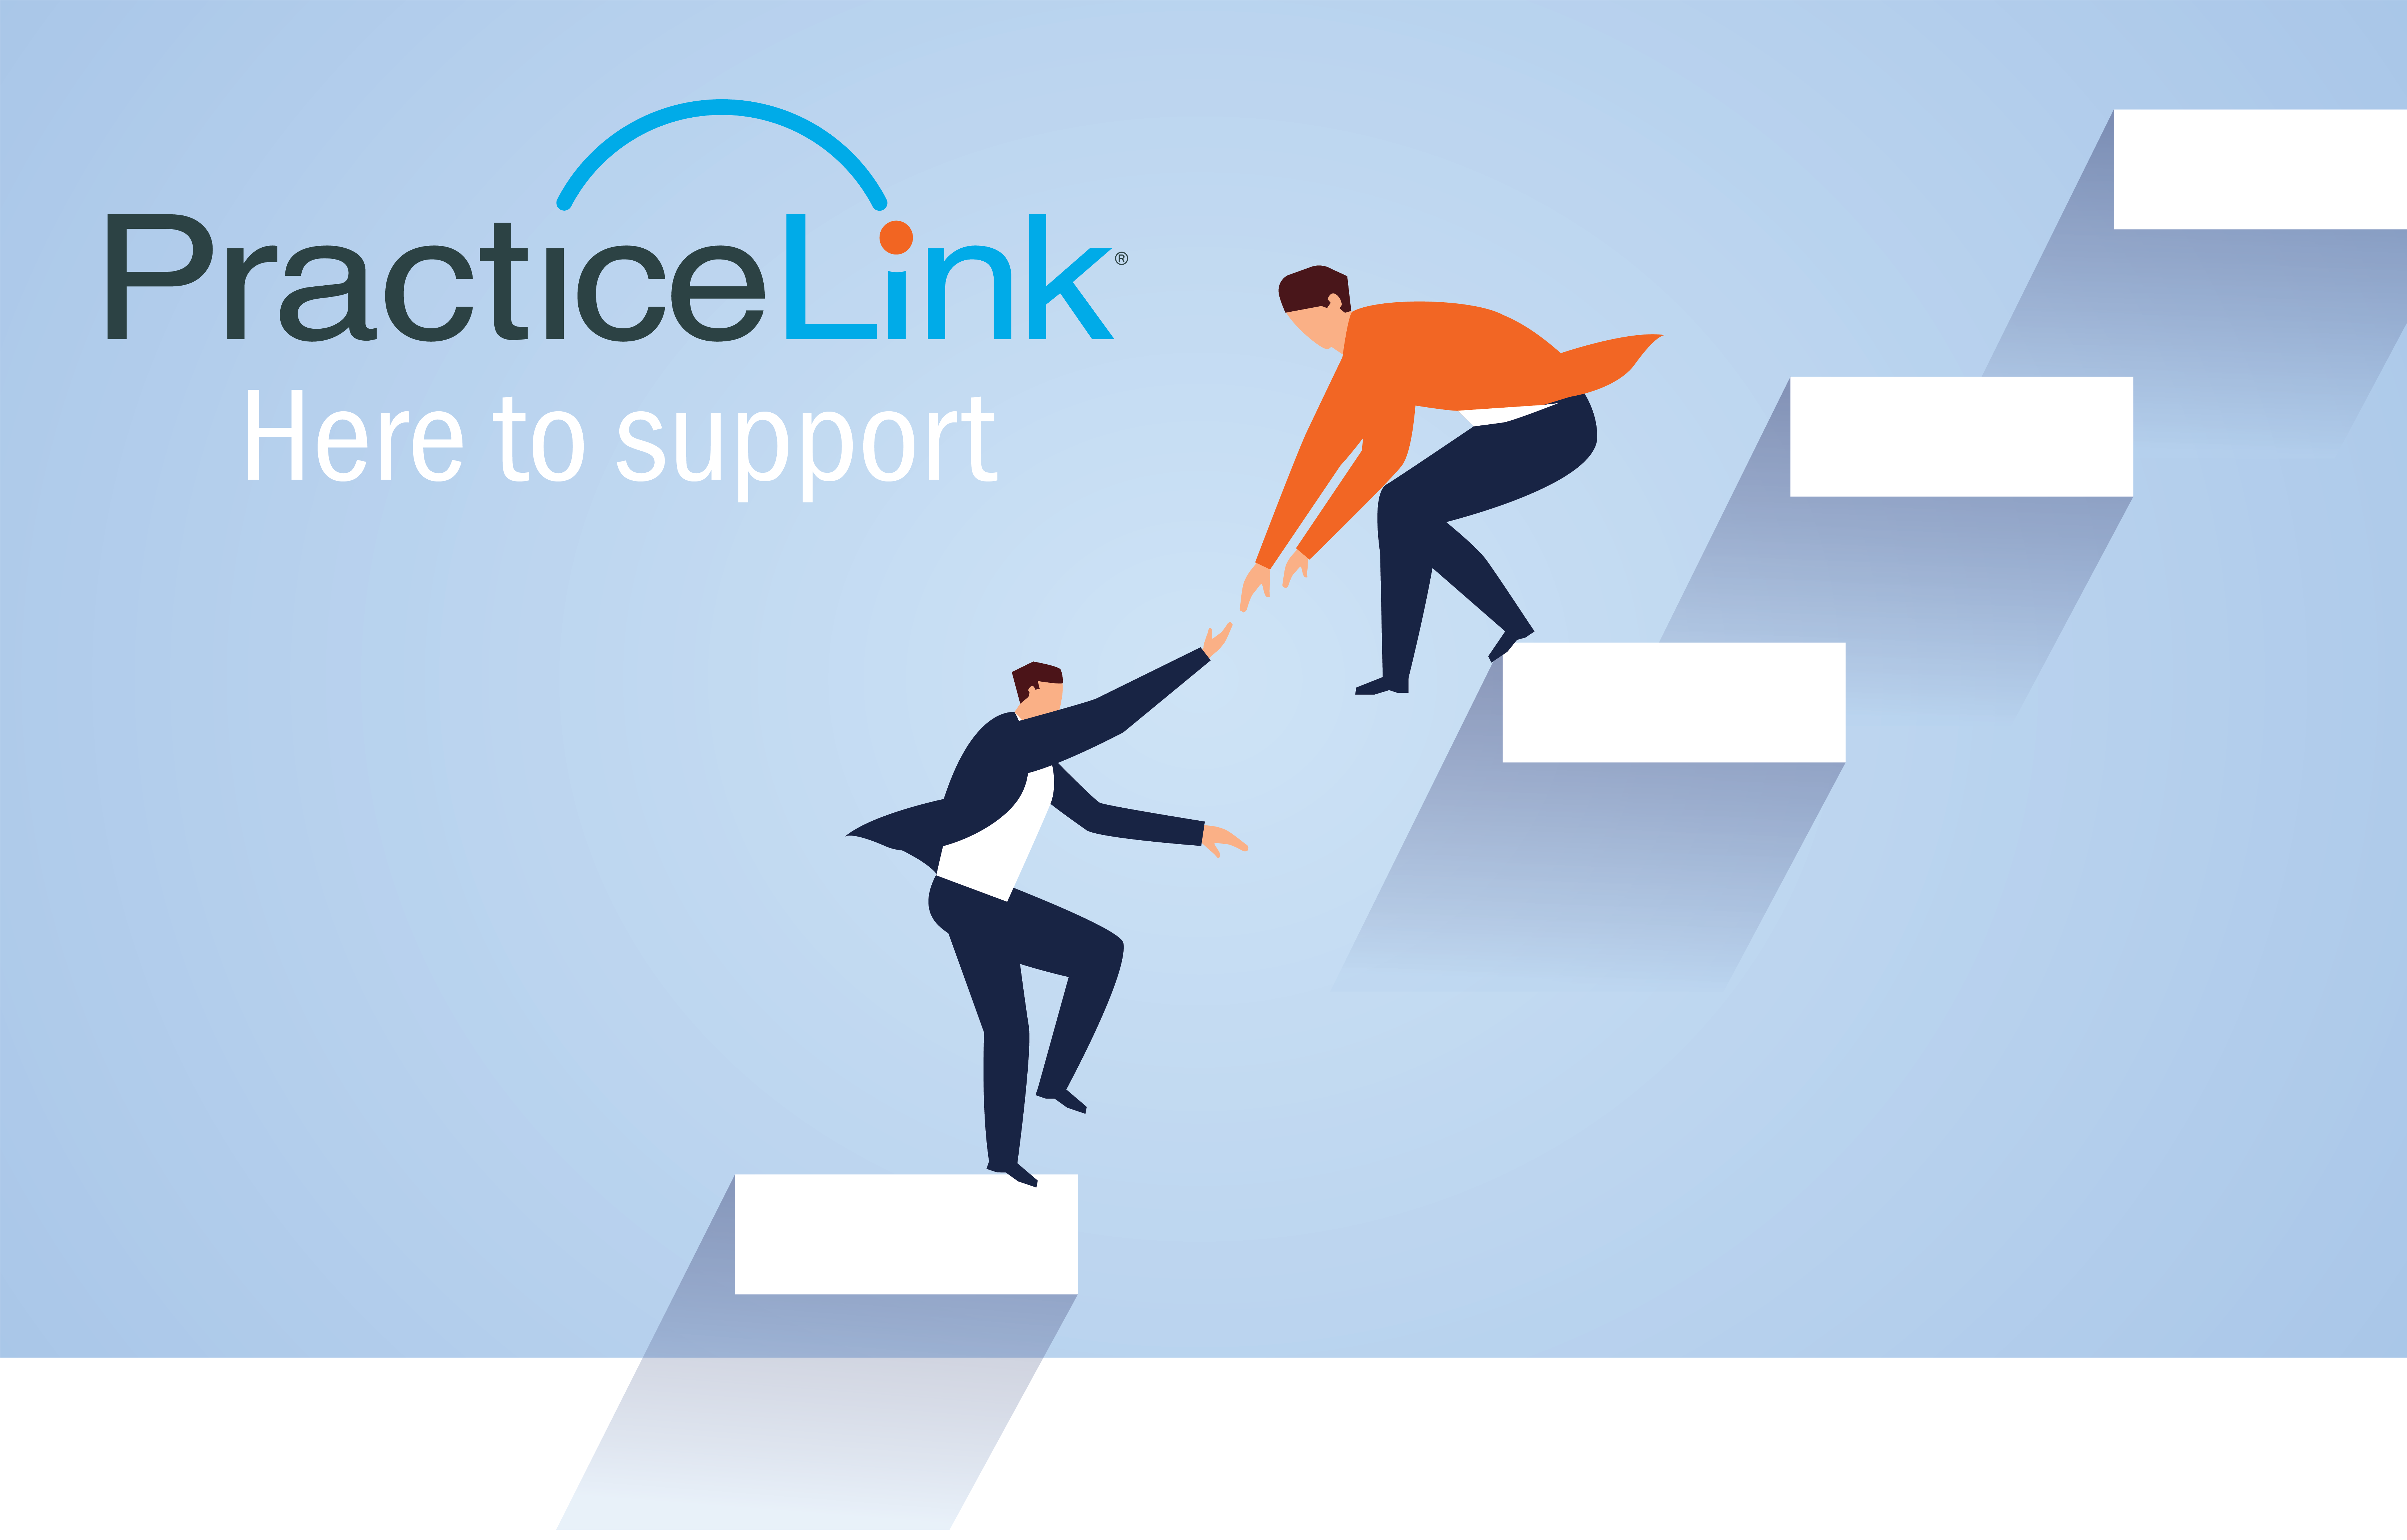 During tough times - and always - PracticeLink is here to support you